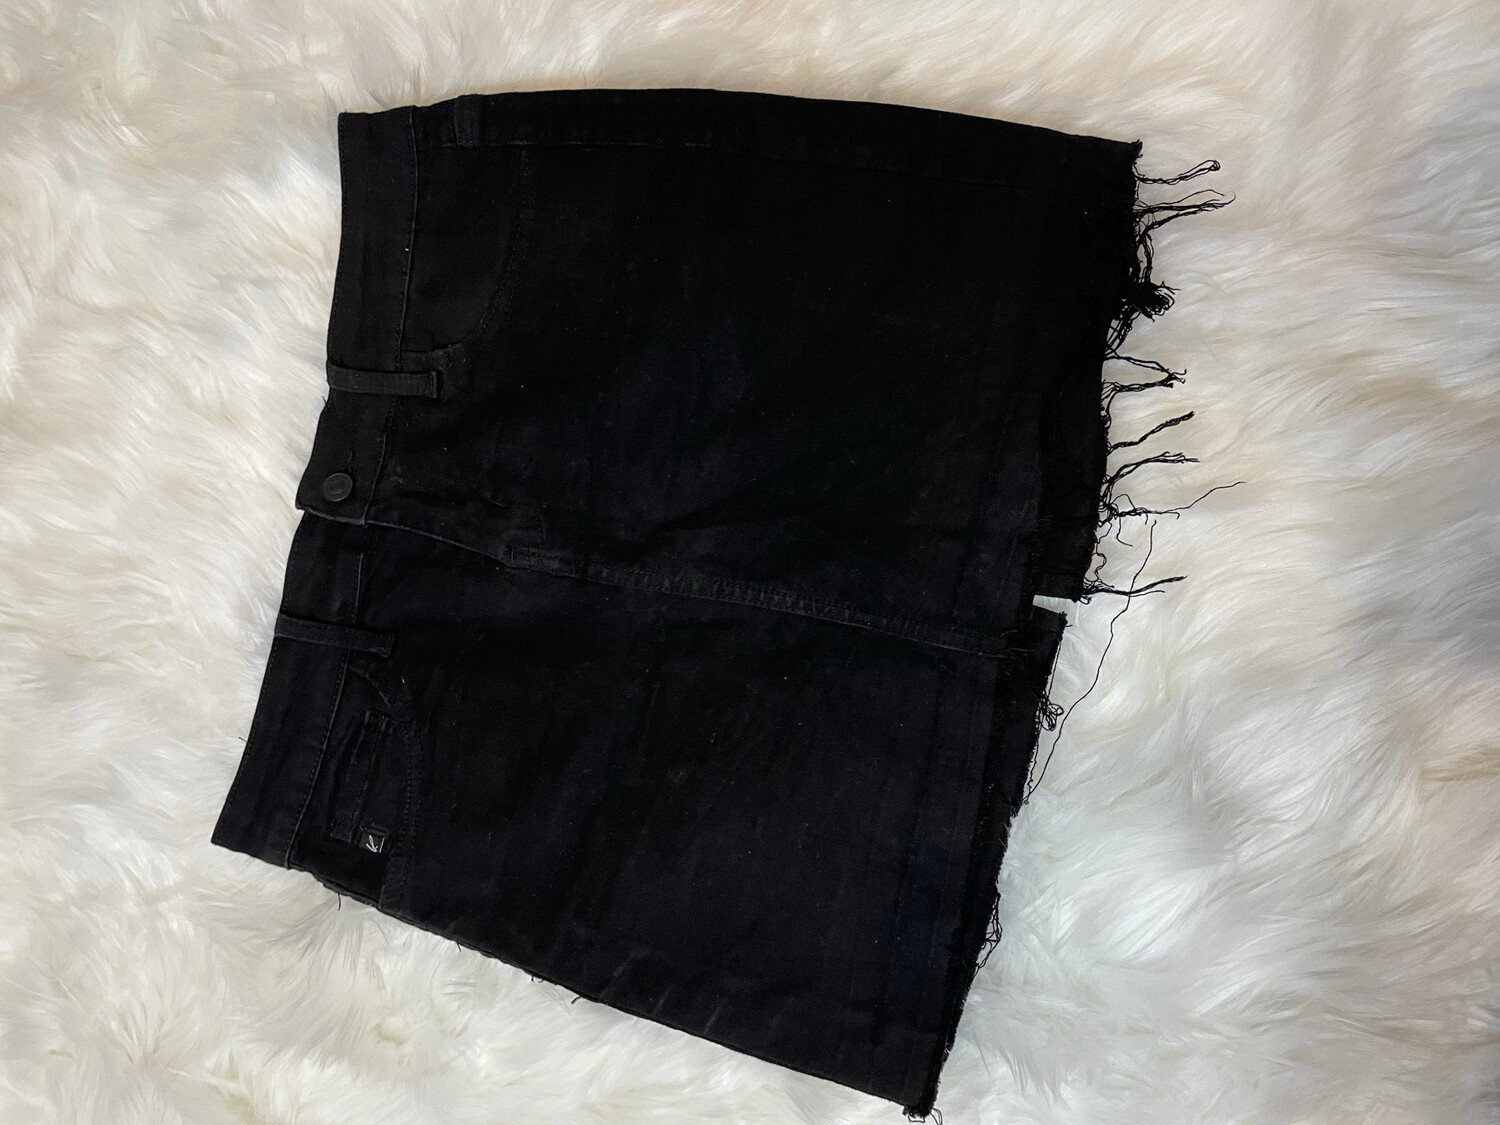 KanCan Black Raw Hem Denim Skirt - M